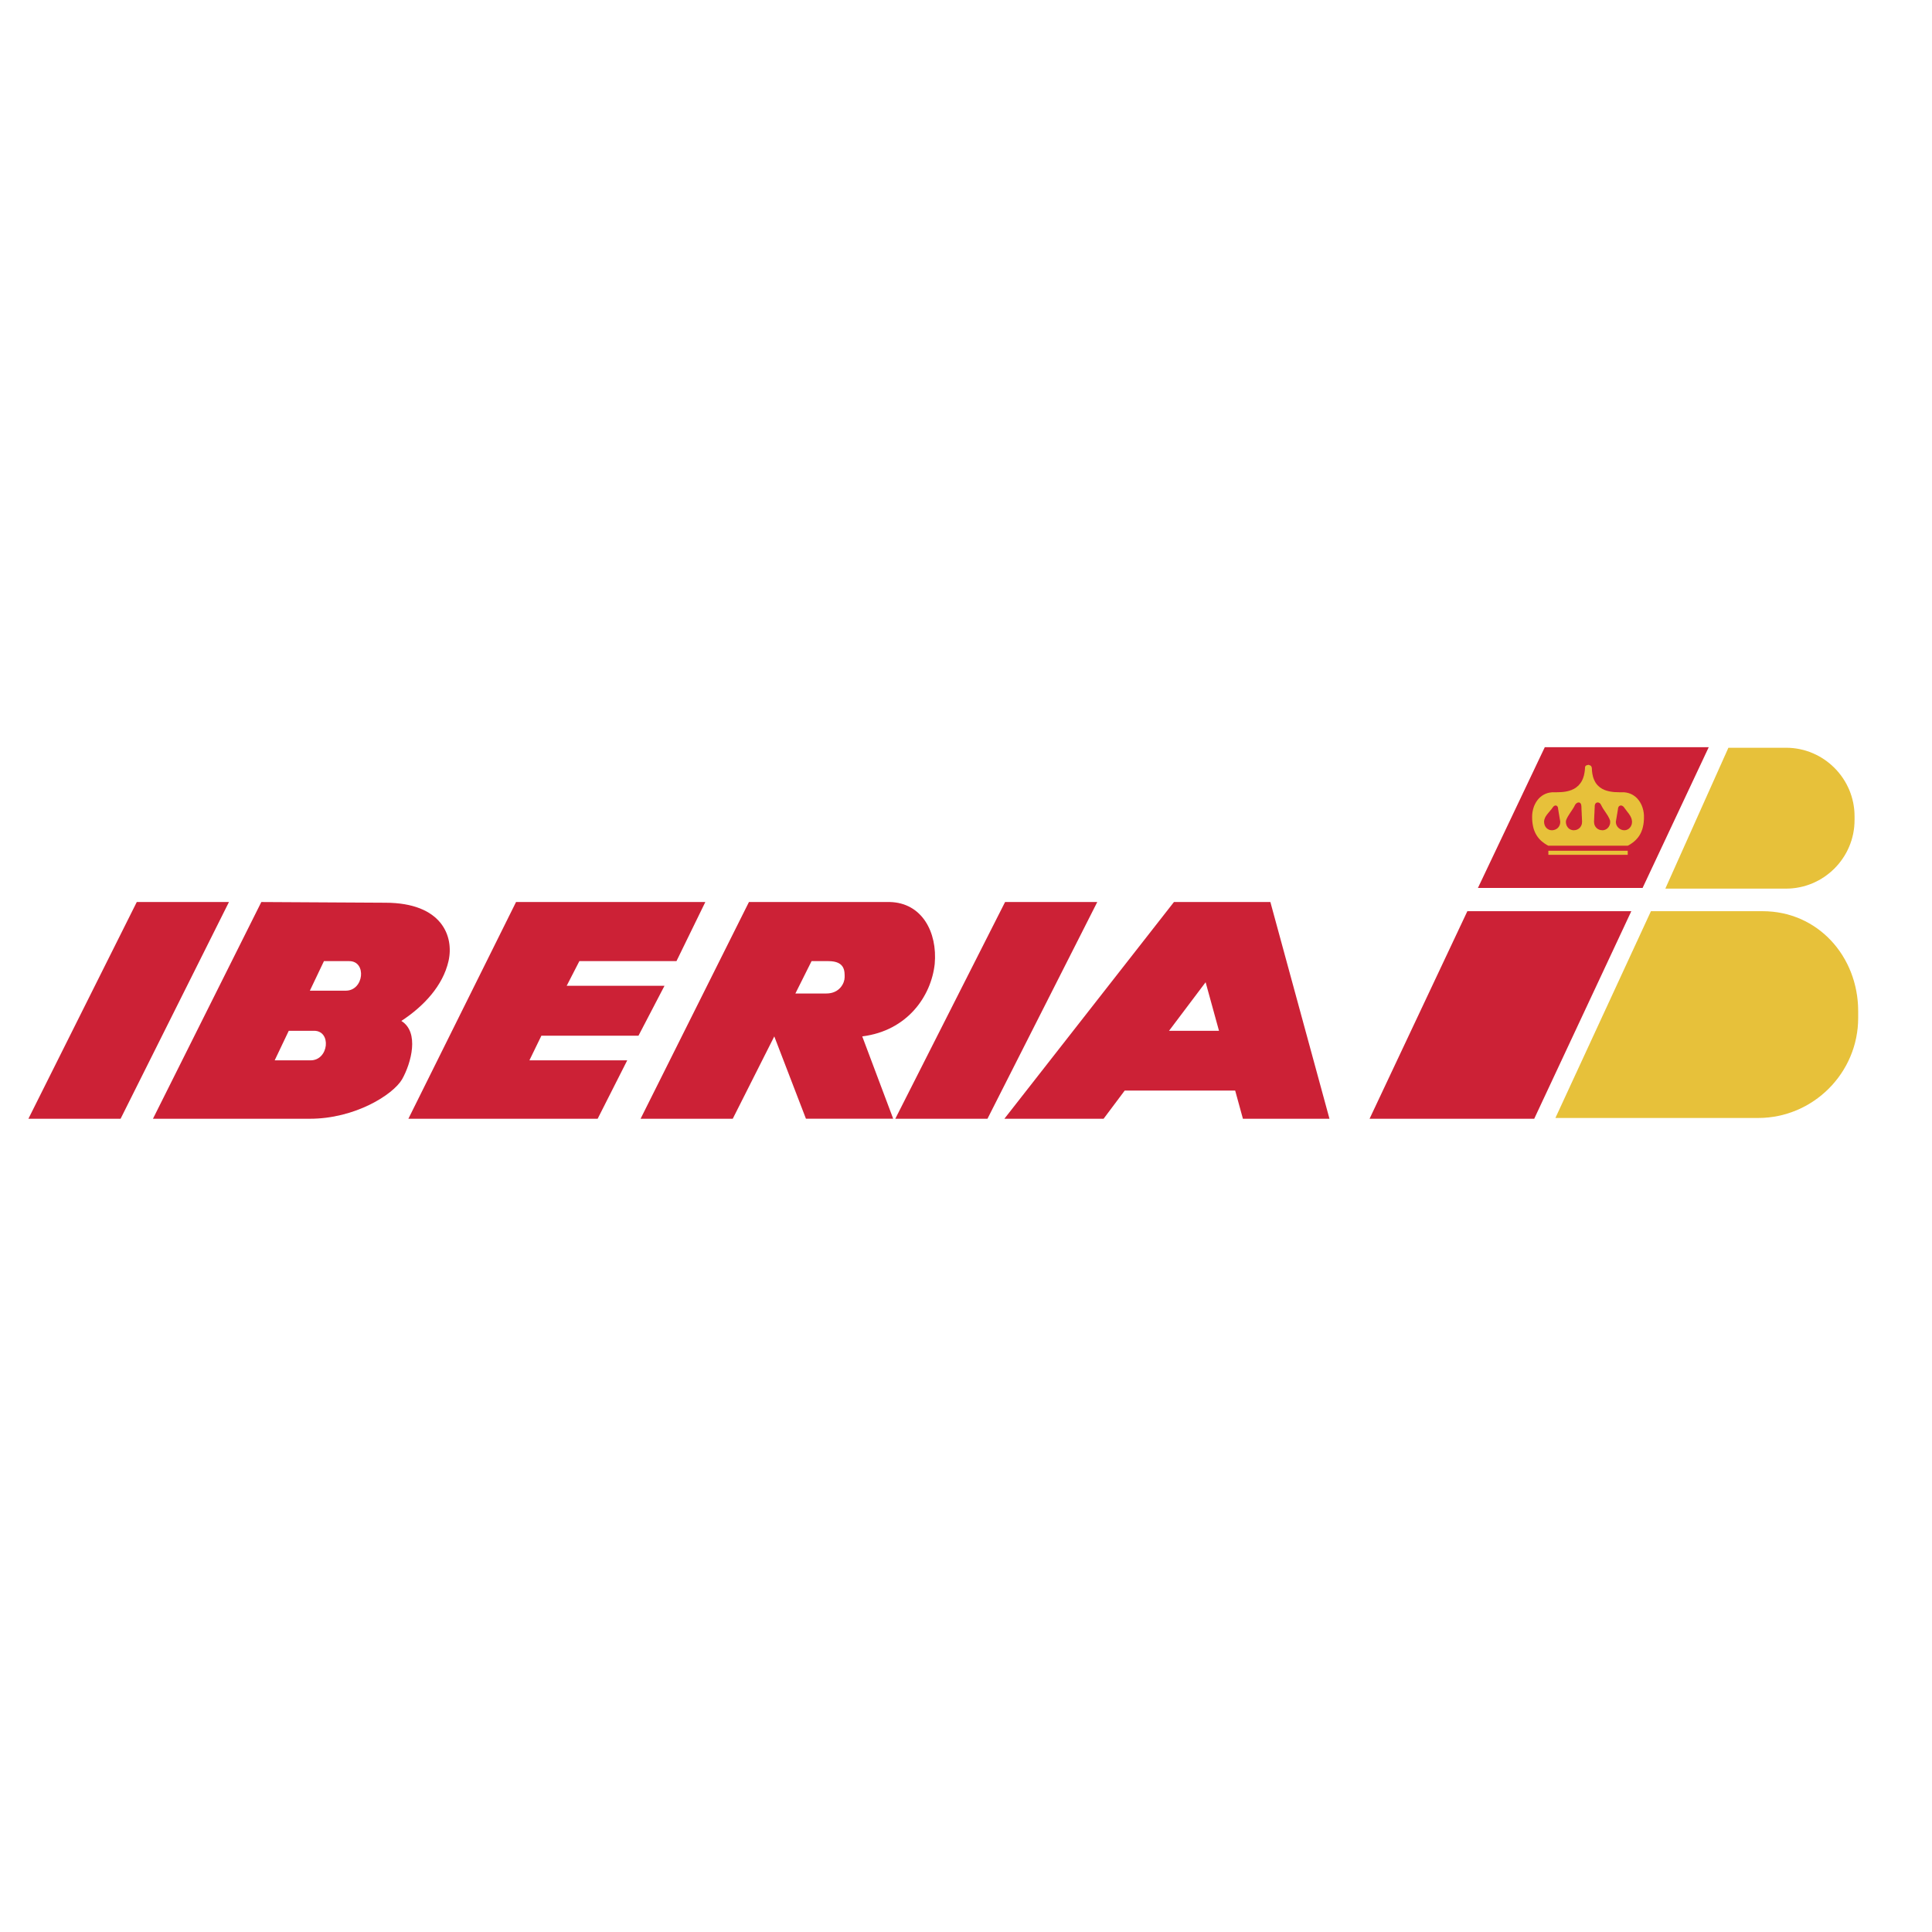 Iberia Airlines Cargo tracking | Track Iberia Airlines Cargo packages | Parcel Arrive